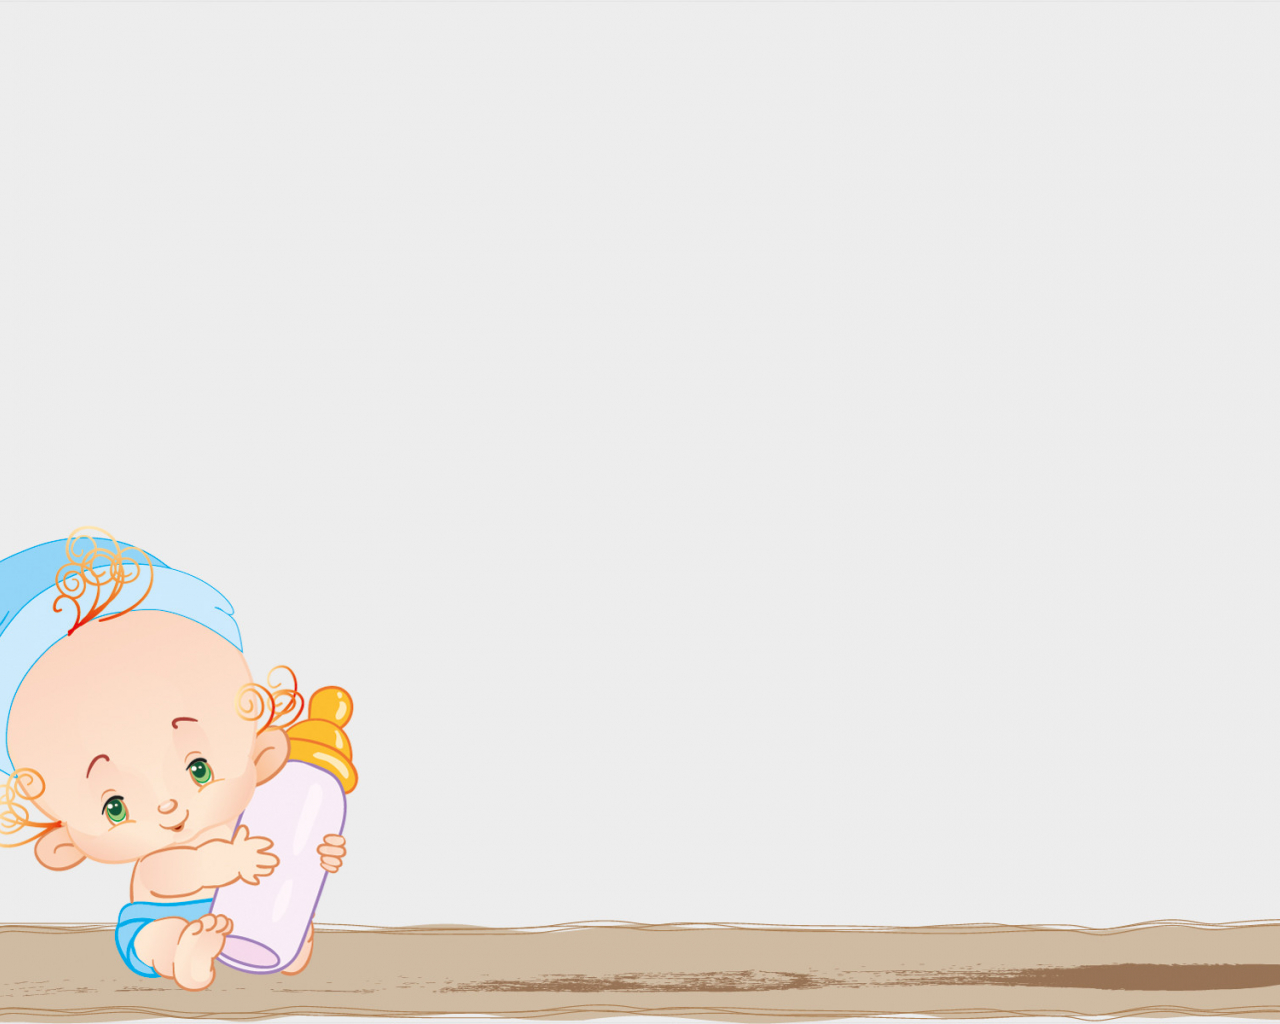 Free Download Baby Ppt Background Powerpoint Backgrounds For 1600x1200 For Your Desktop Mobile Tablet Explore 71 Background For Baby Pictures Baby Wallpapers For Desktop Backgrounds